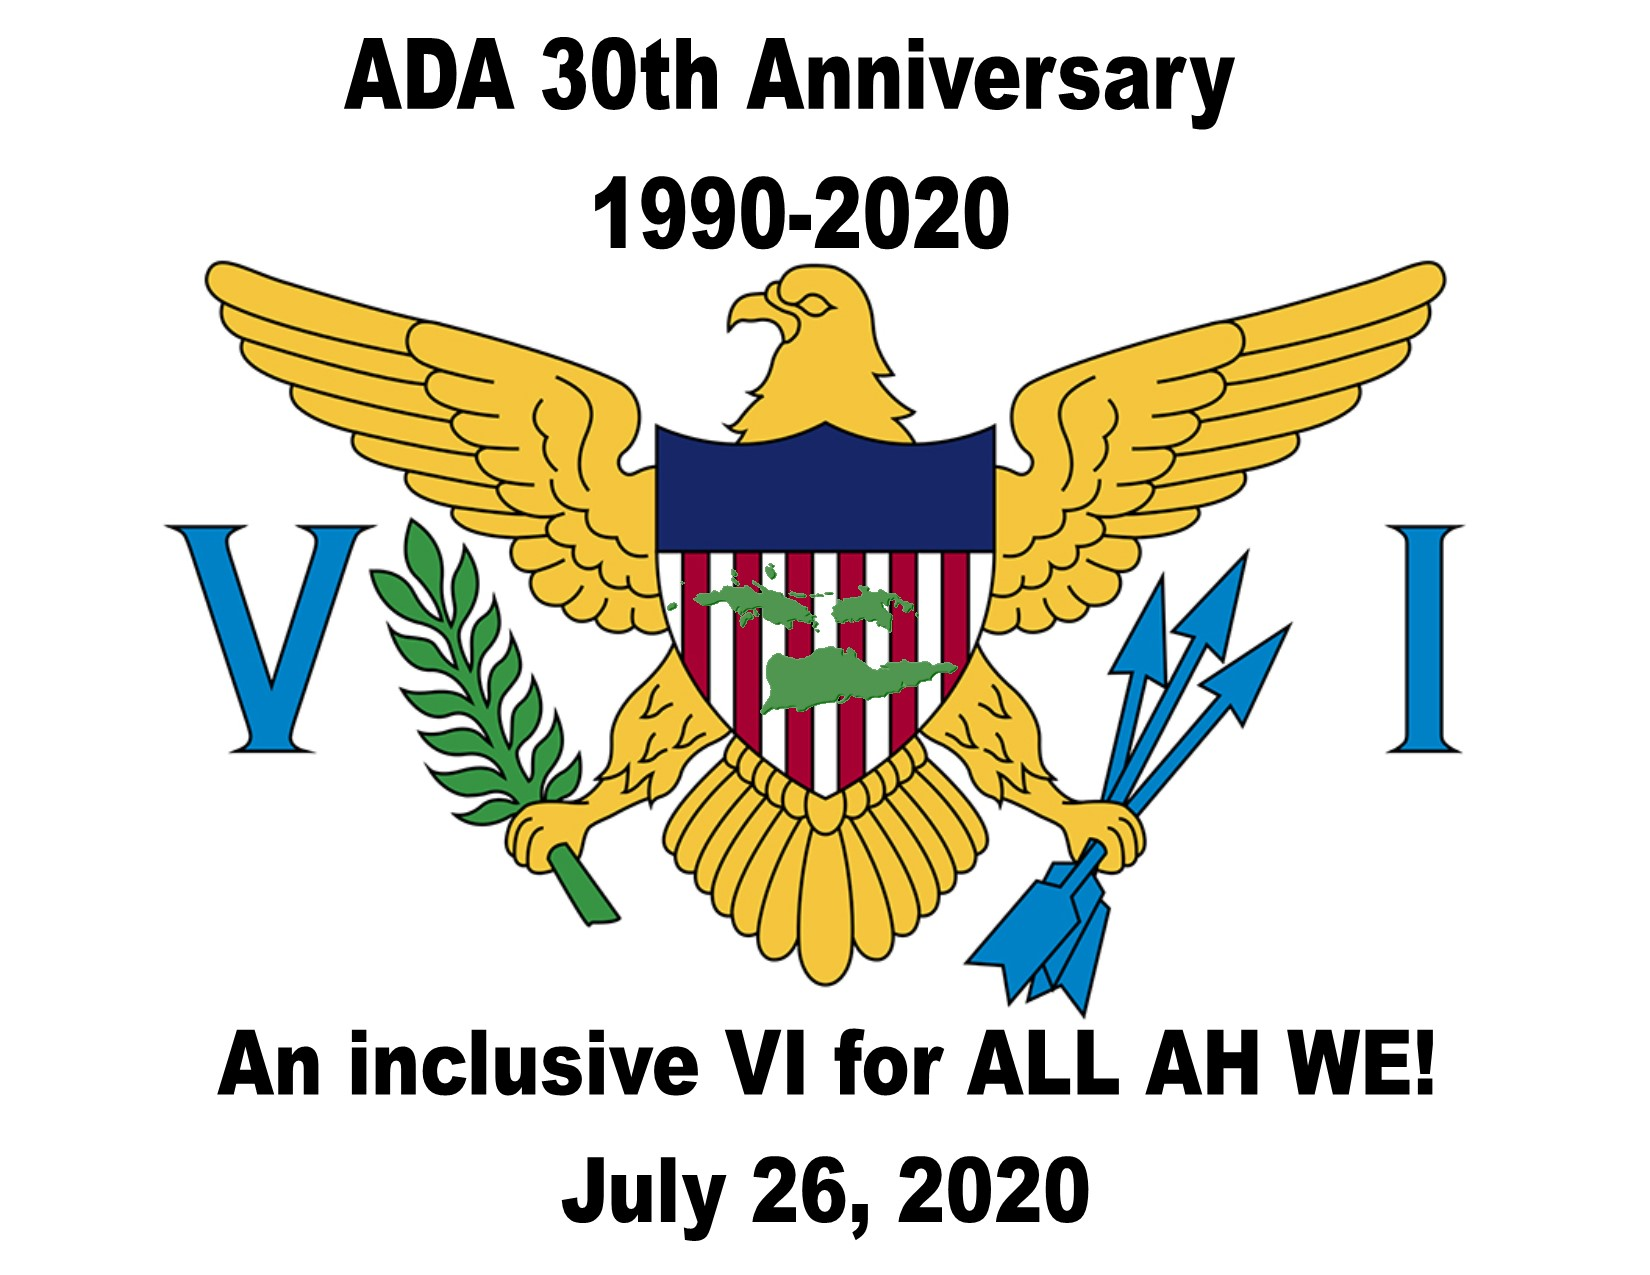 Eagle holds a leaf in and 3 arrows in talons, says V on left side and I on right side. Images of the 3 U.S. Virgin Islands on shield in the middle of the body of the eagle. ADA 30th Anniversary 1990-2020.